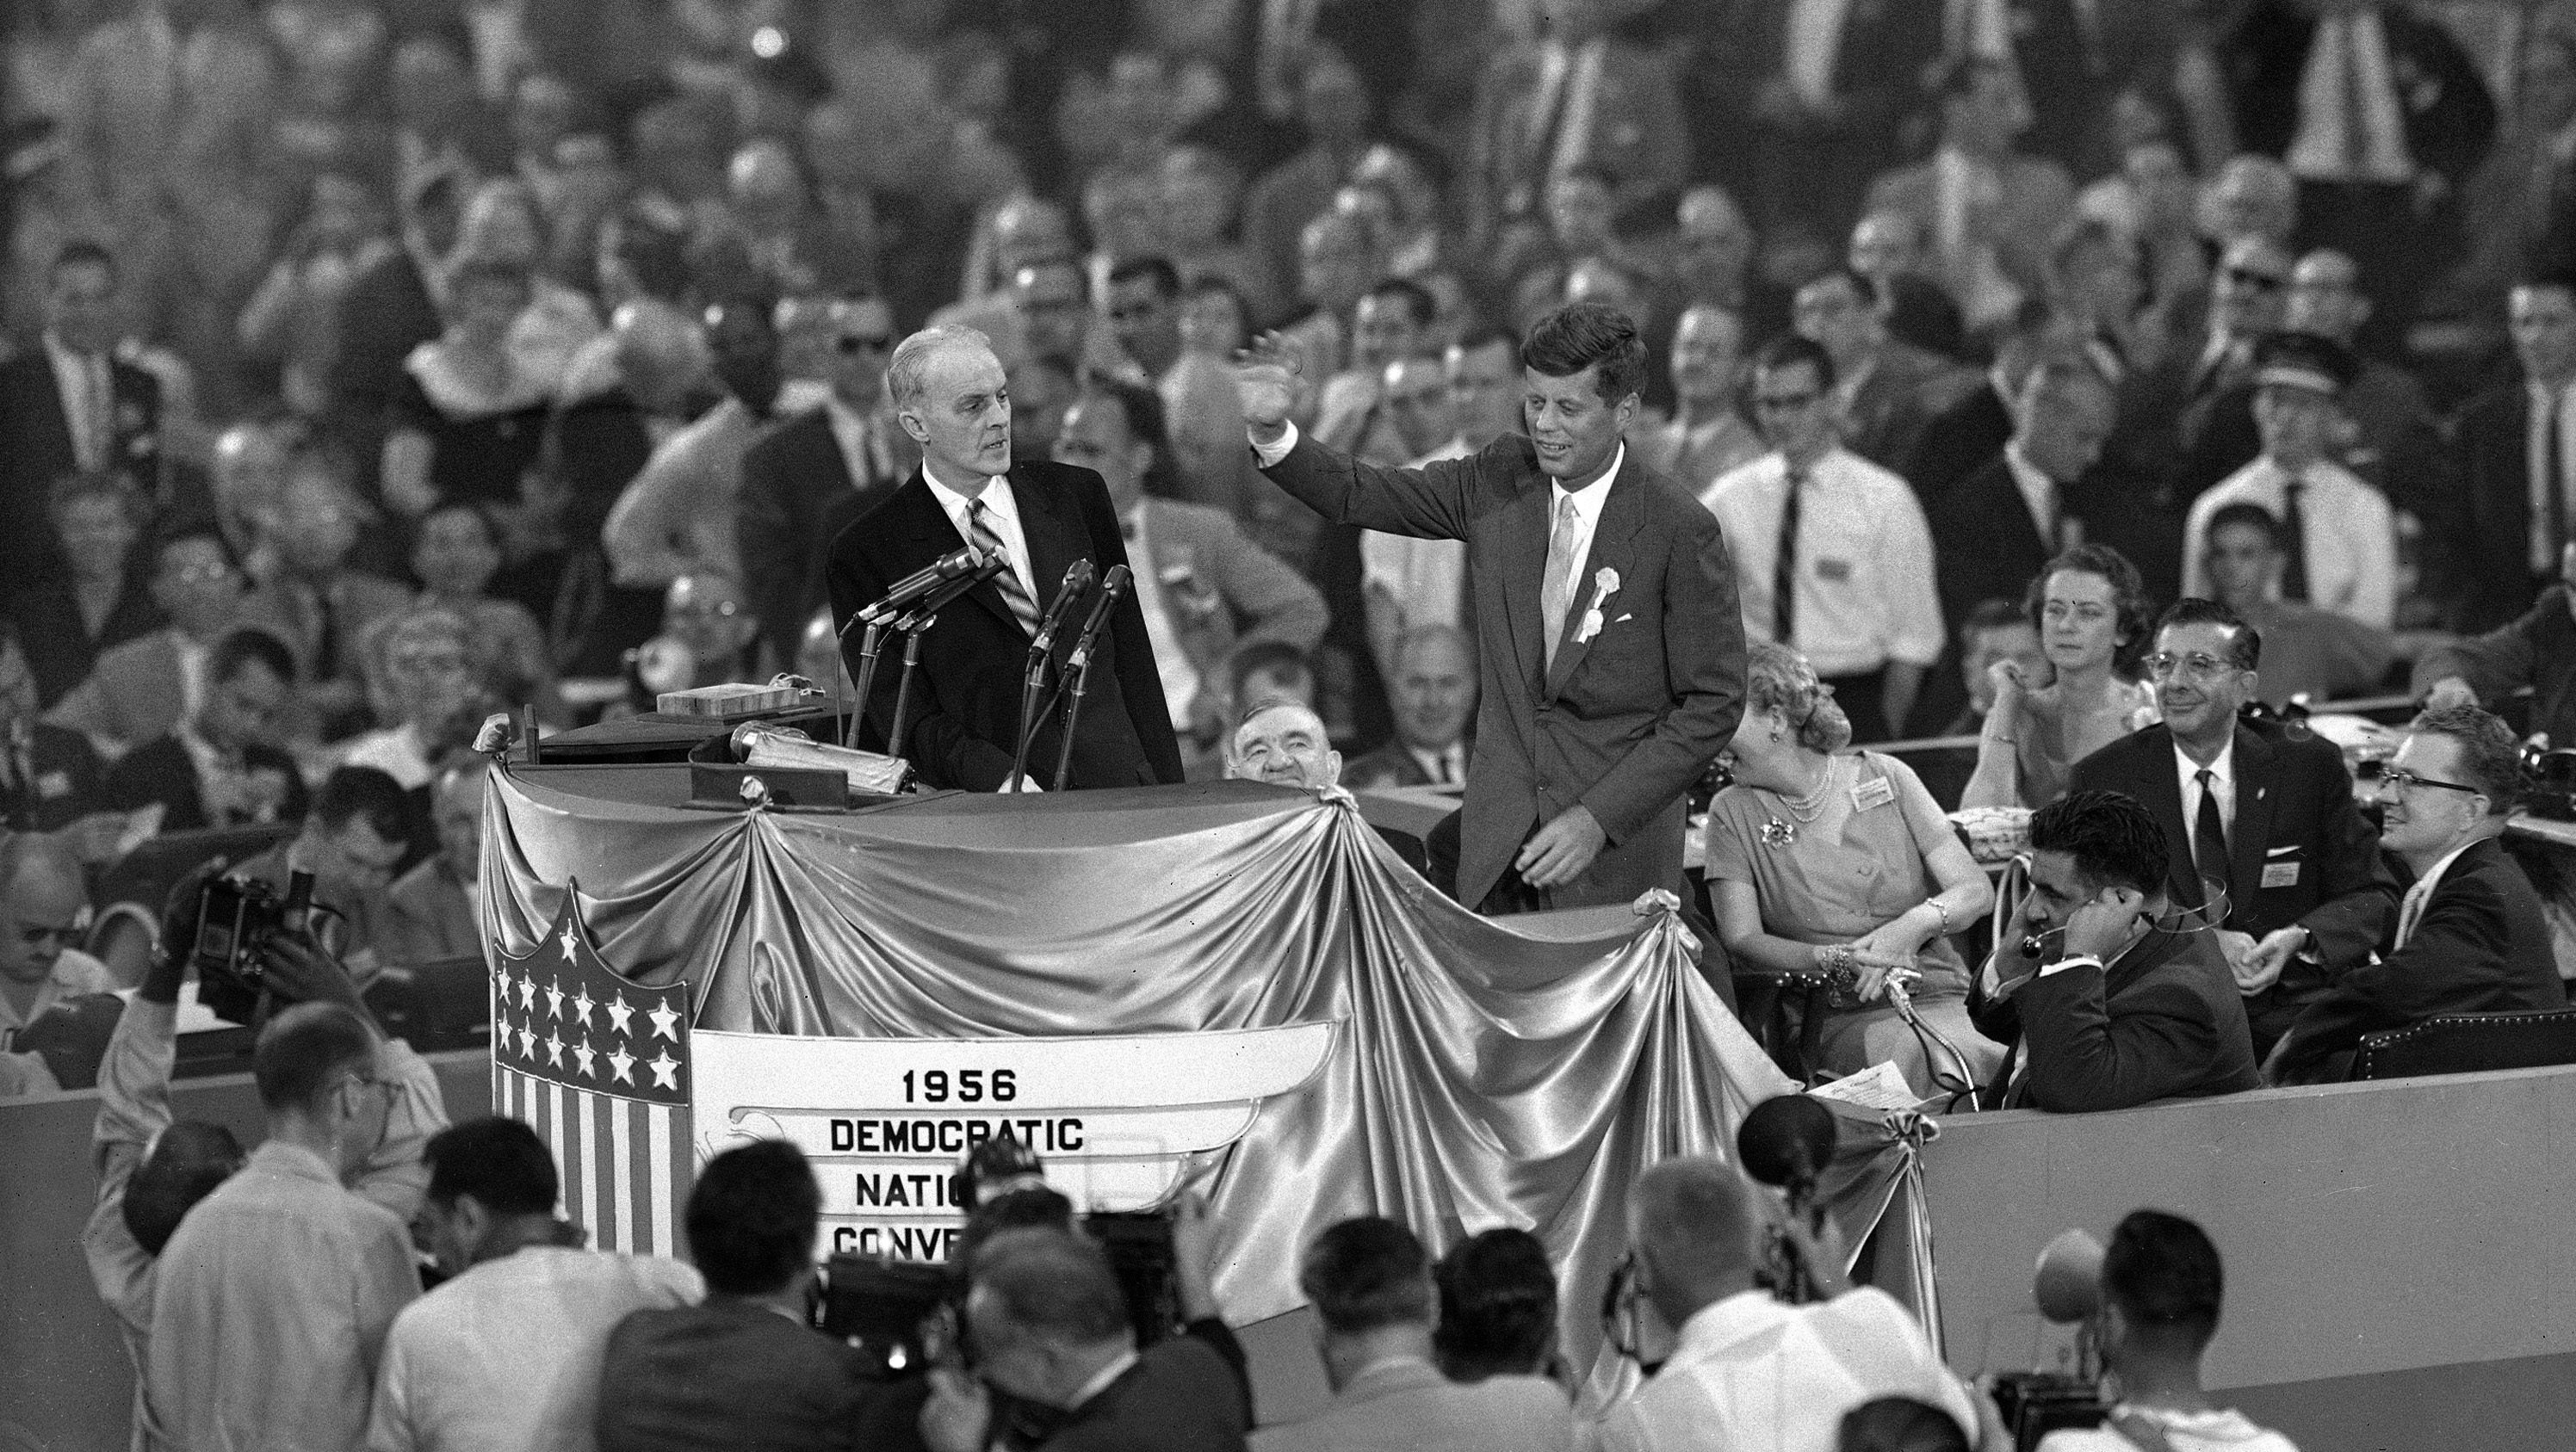 Then Sen. John F. Kennedy of Massachusetts appears at the Democratic National Convention in Chicago in 1956.